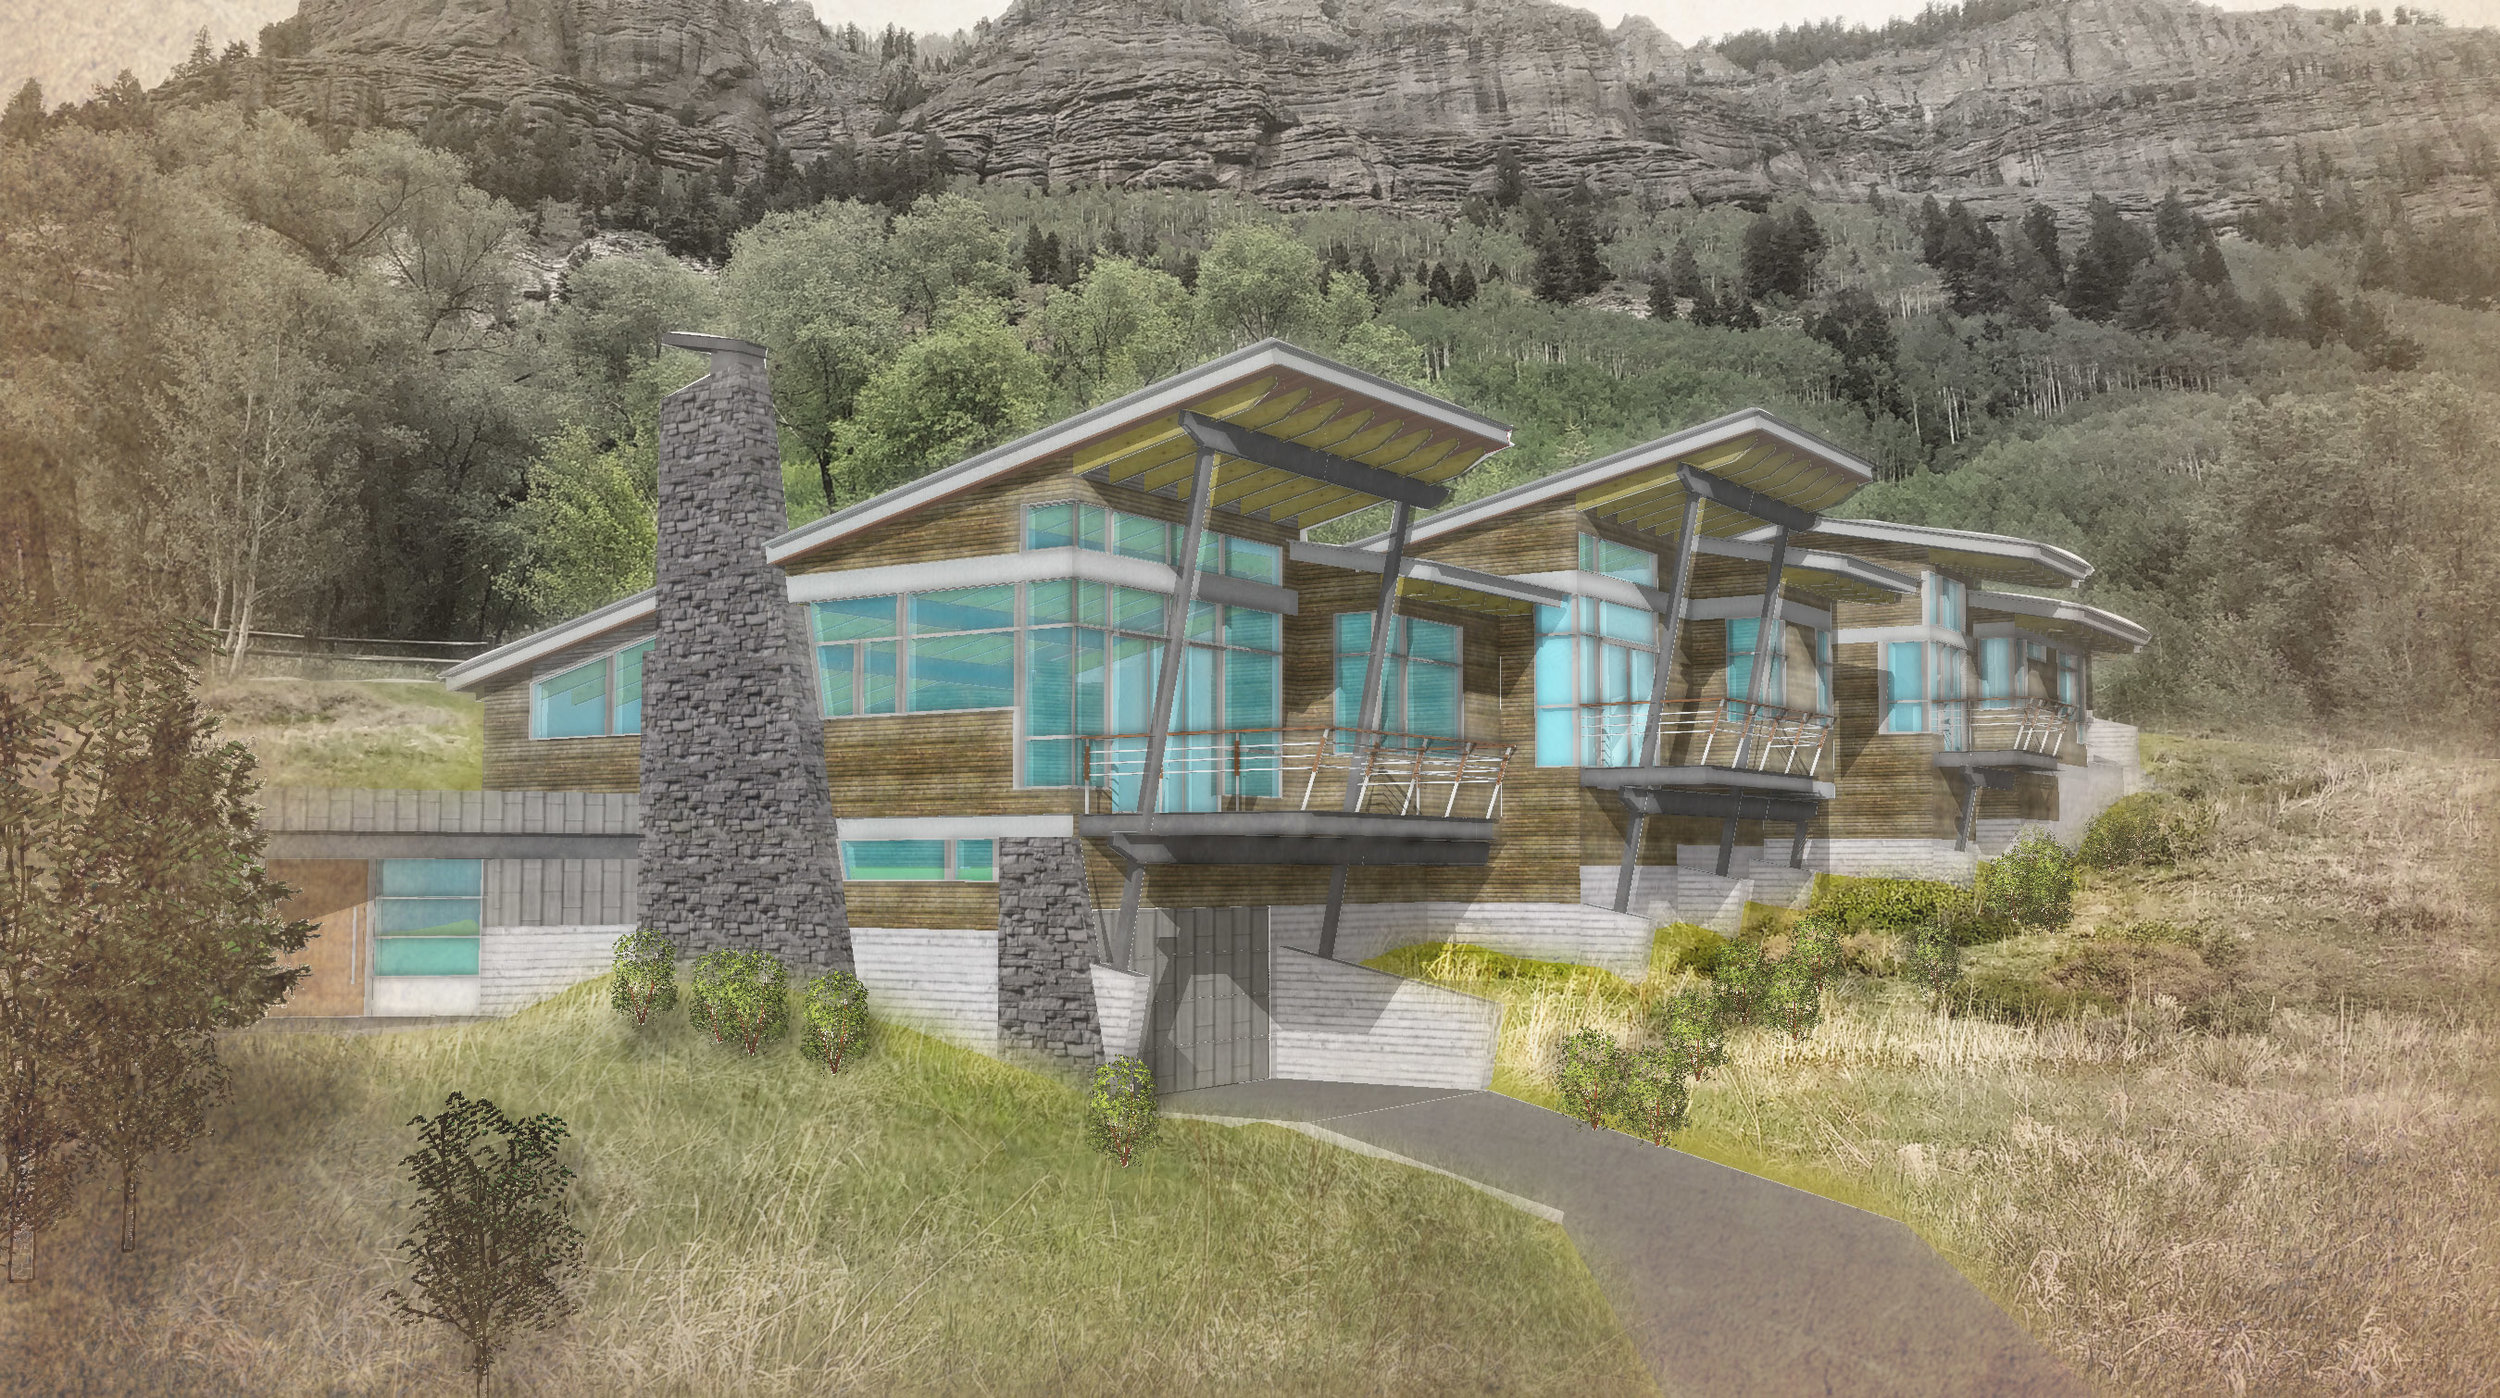 So-Inclined; Telluride Colorado. The Design and Rendering by Designworks, check back for completed images.